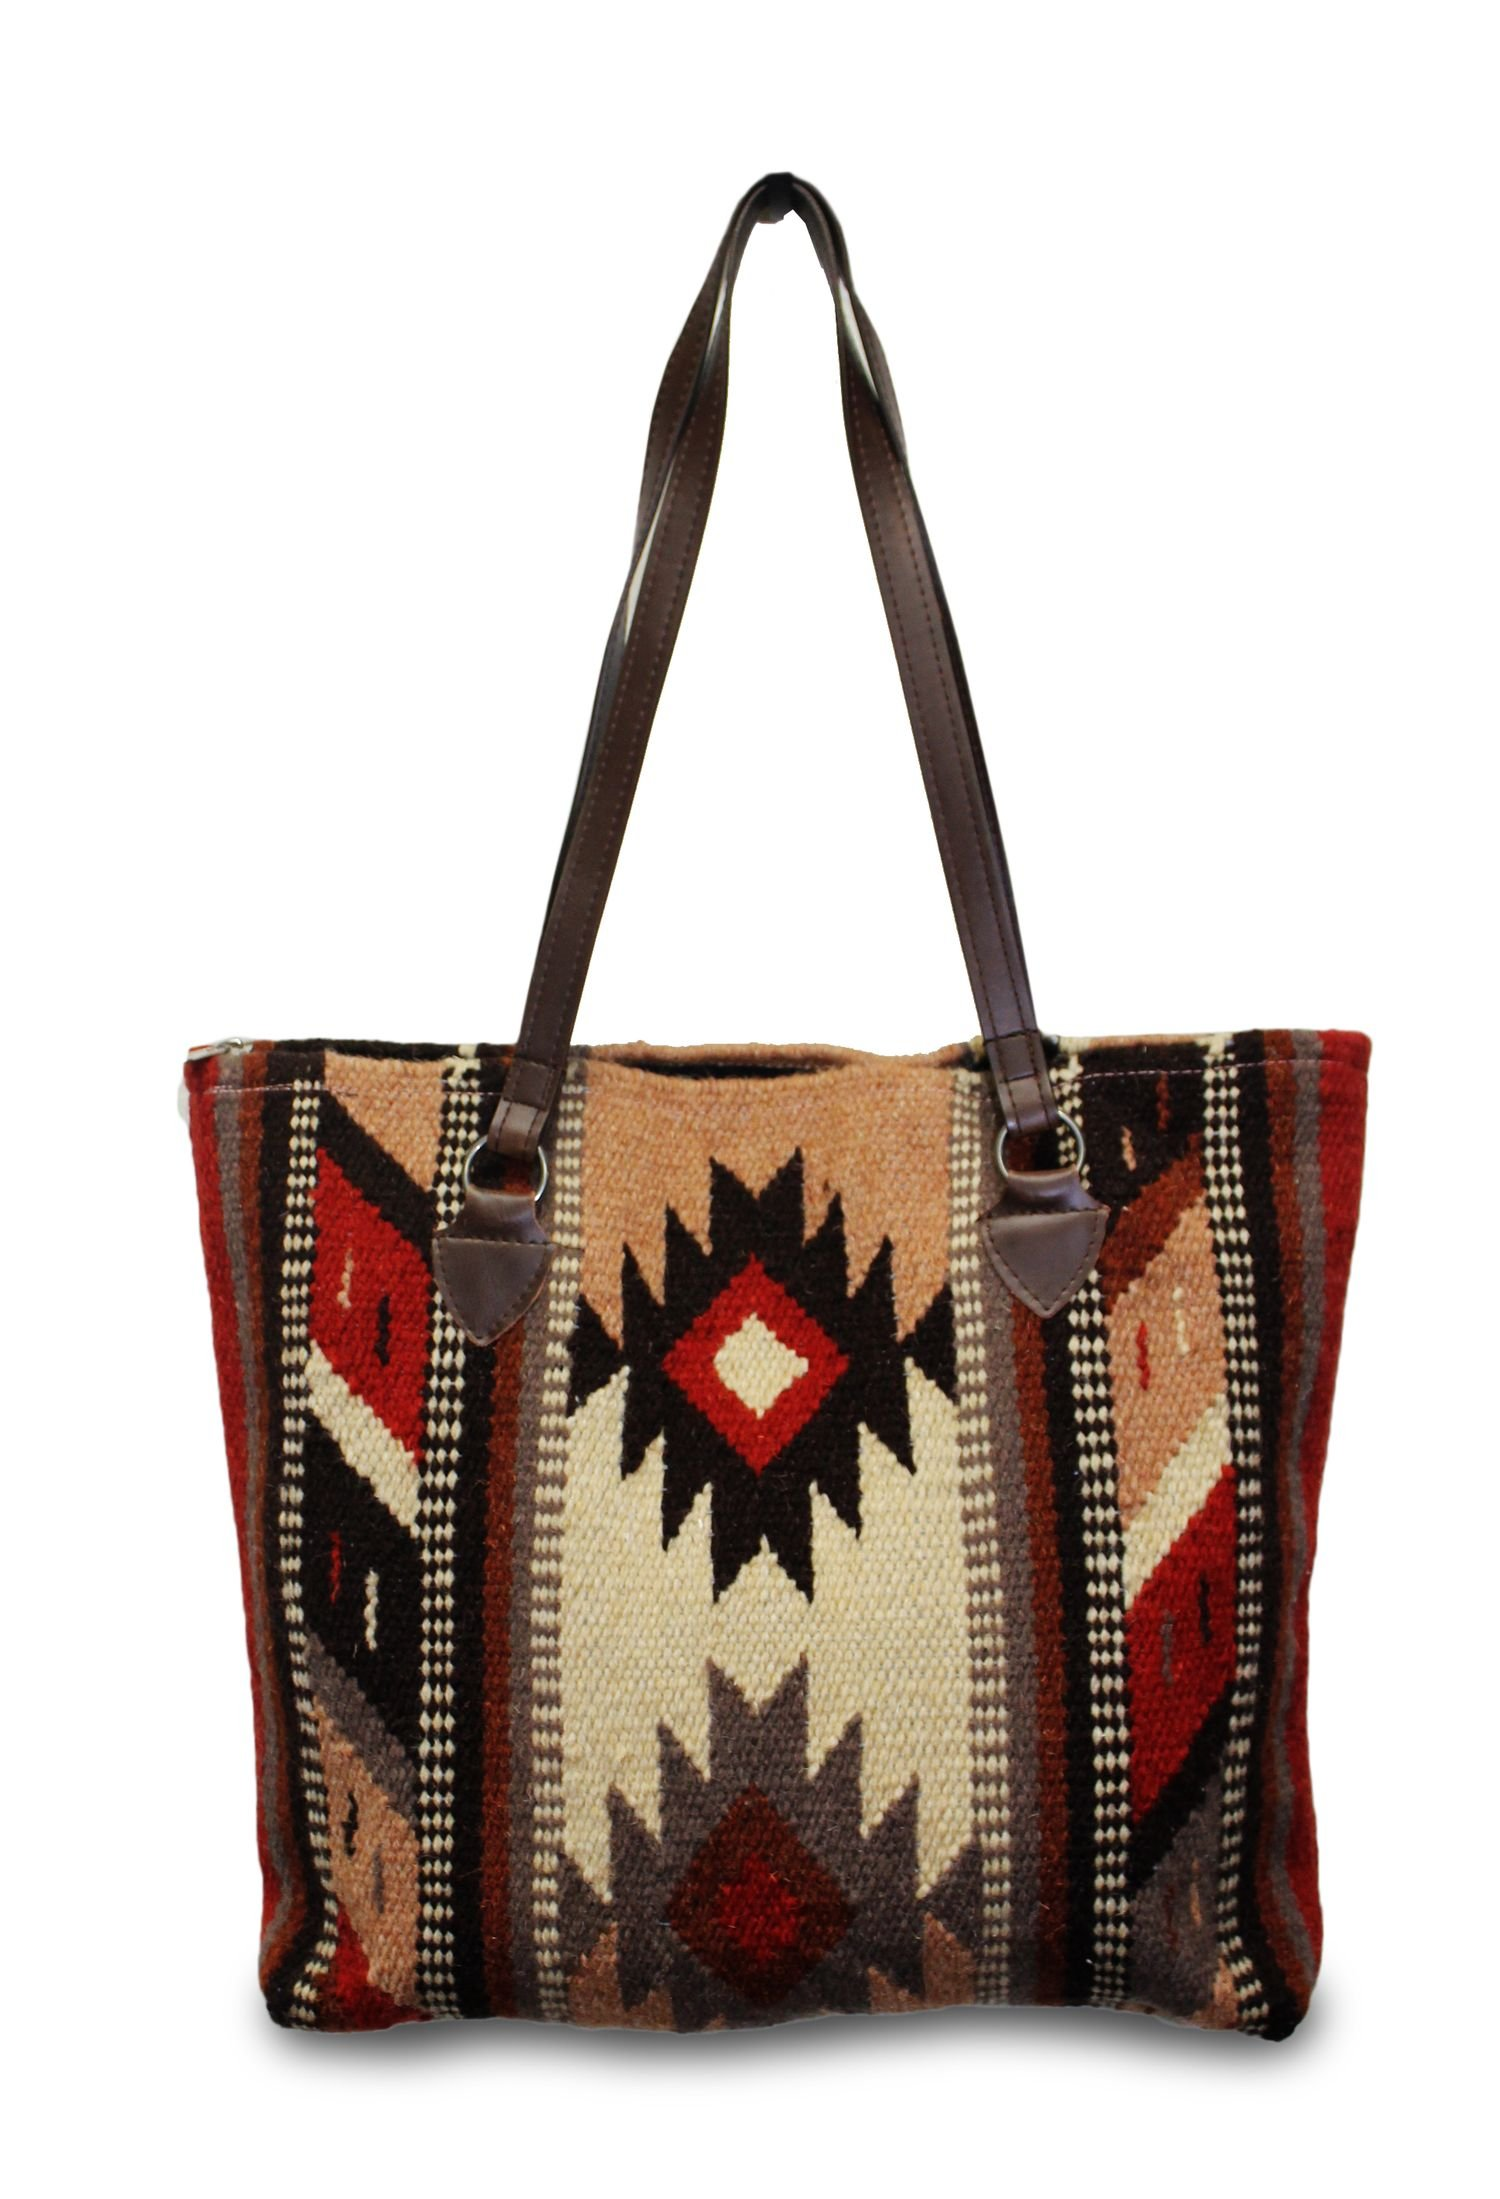 Southwest Boutique Wool Tote Purse Bag Native American Western Style Handwoven (Tempe)